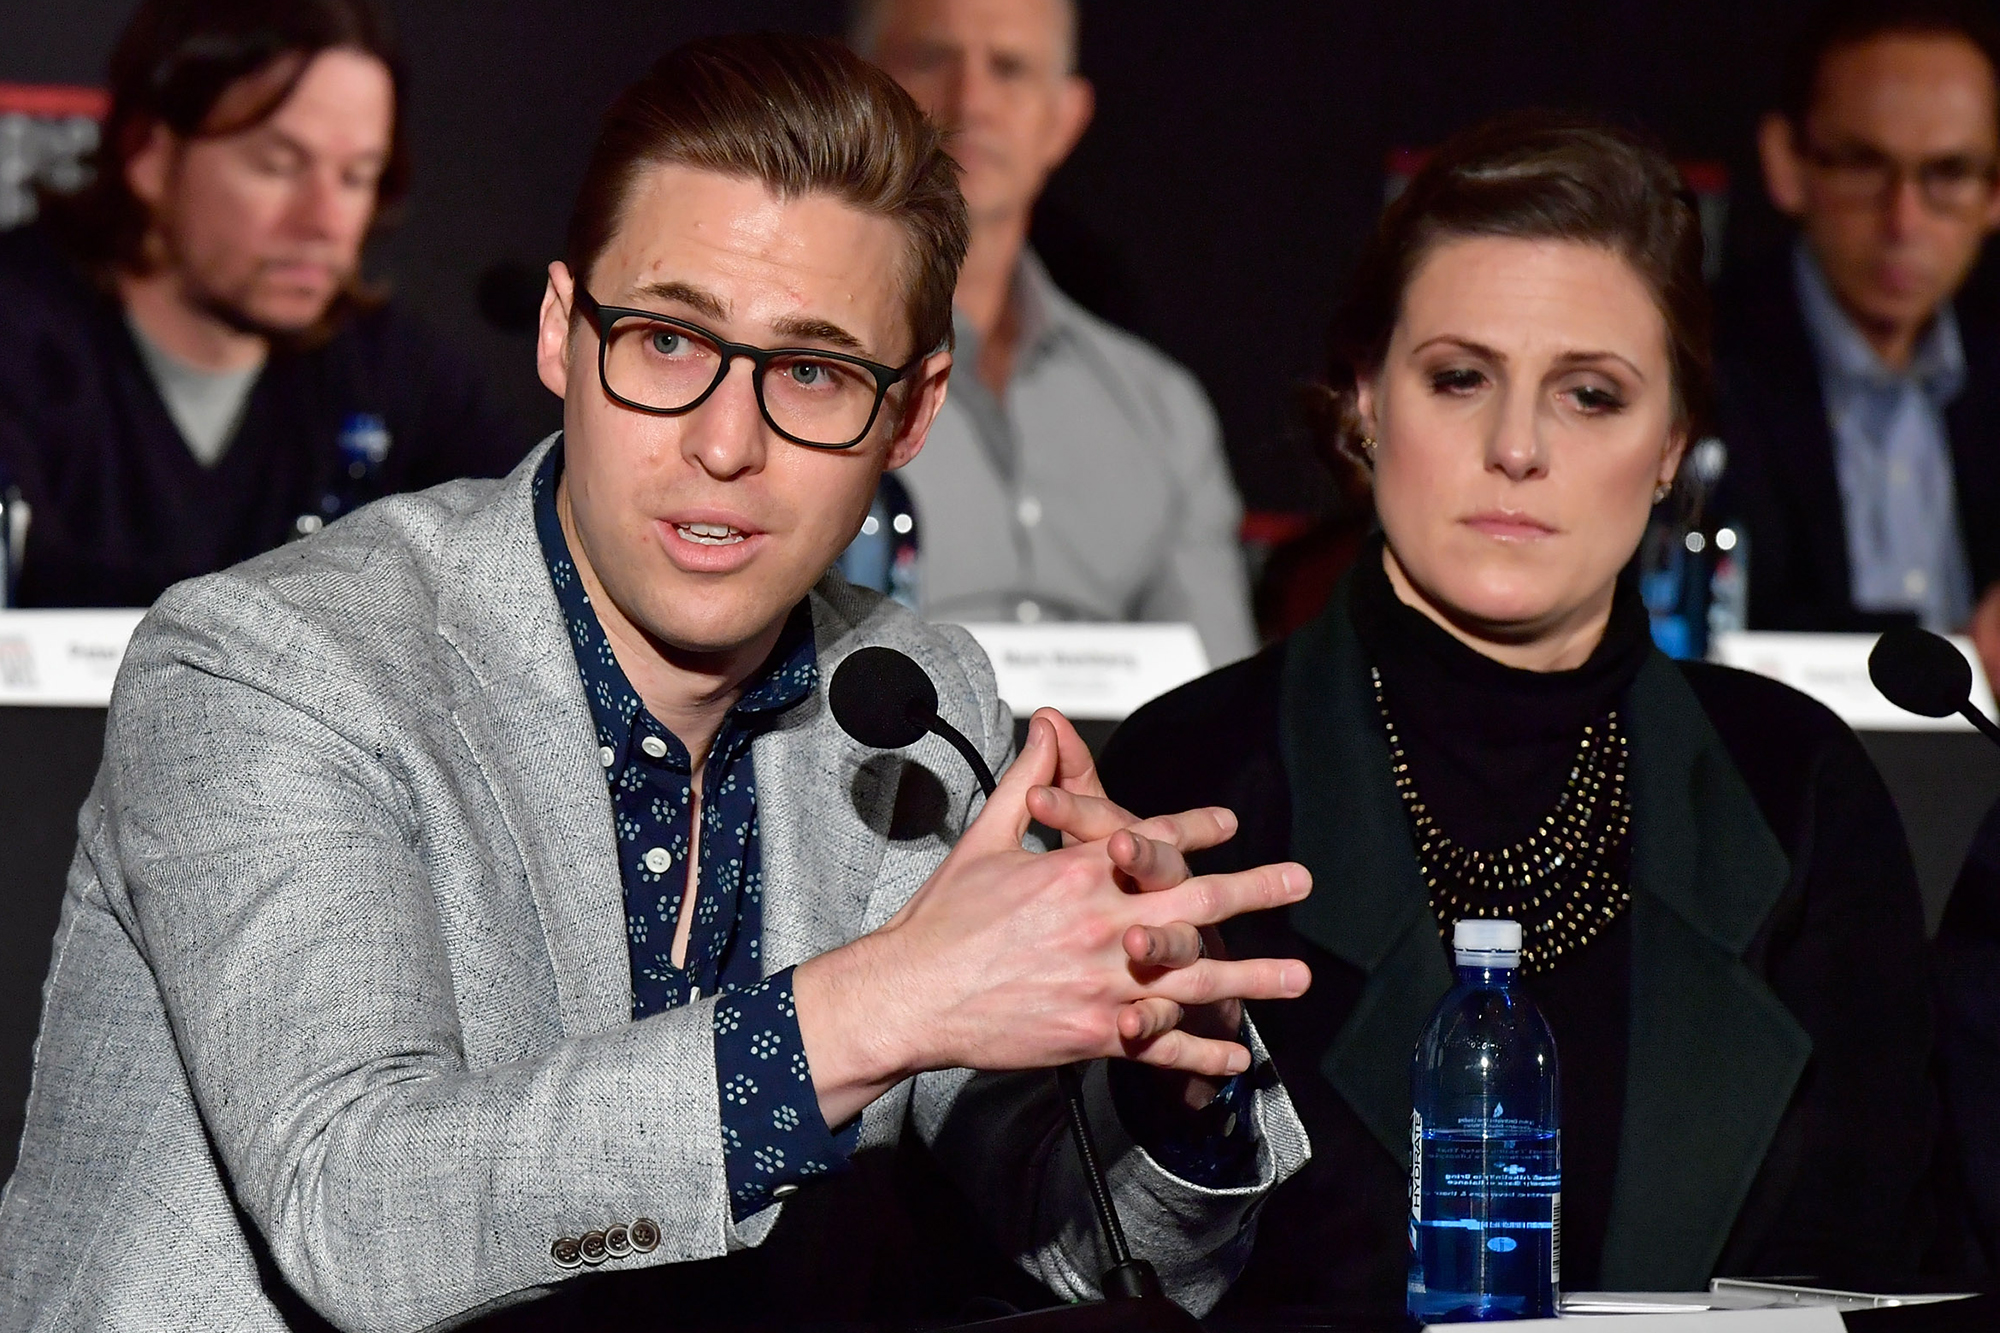 Patrick Downes and Jessica Kensky at a press conference, on Dec. 15, 2016 in Boston.